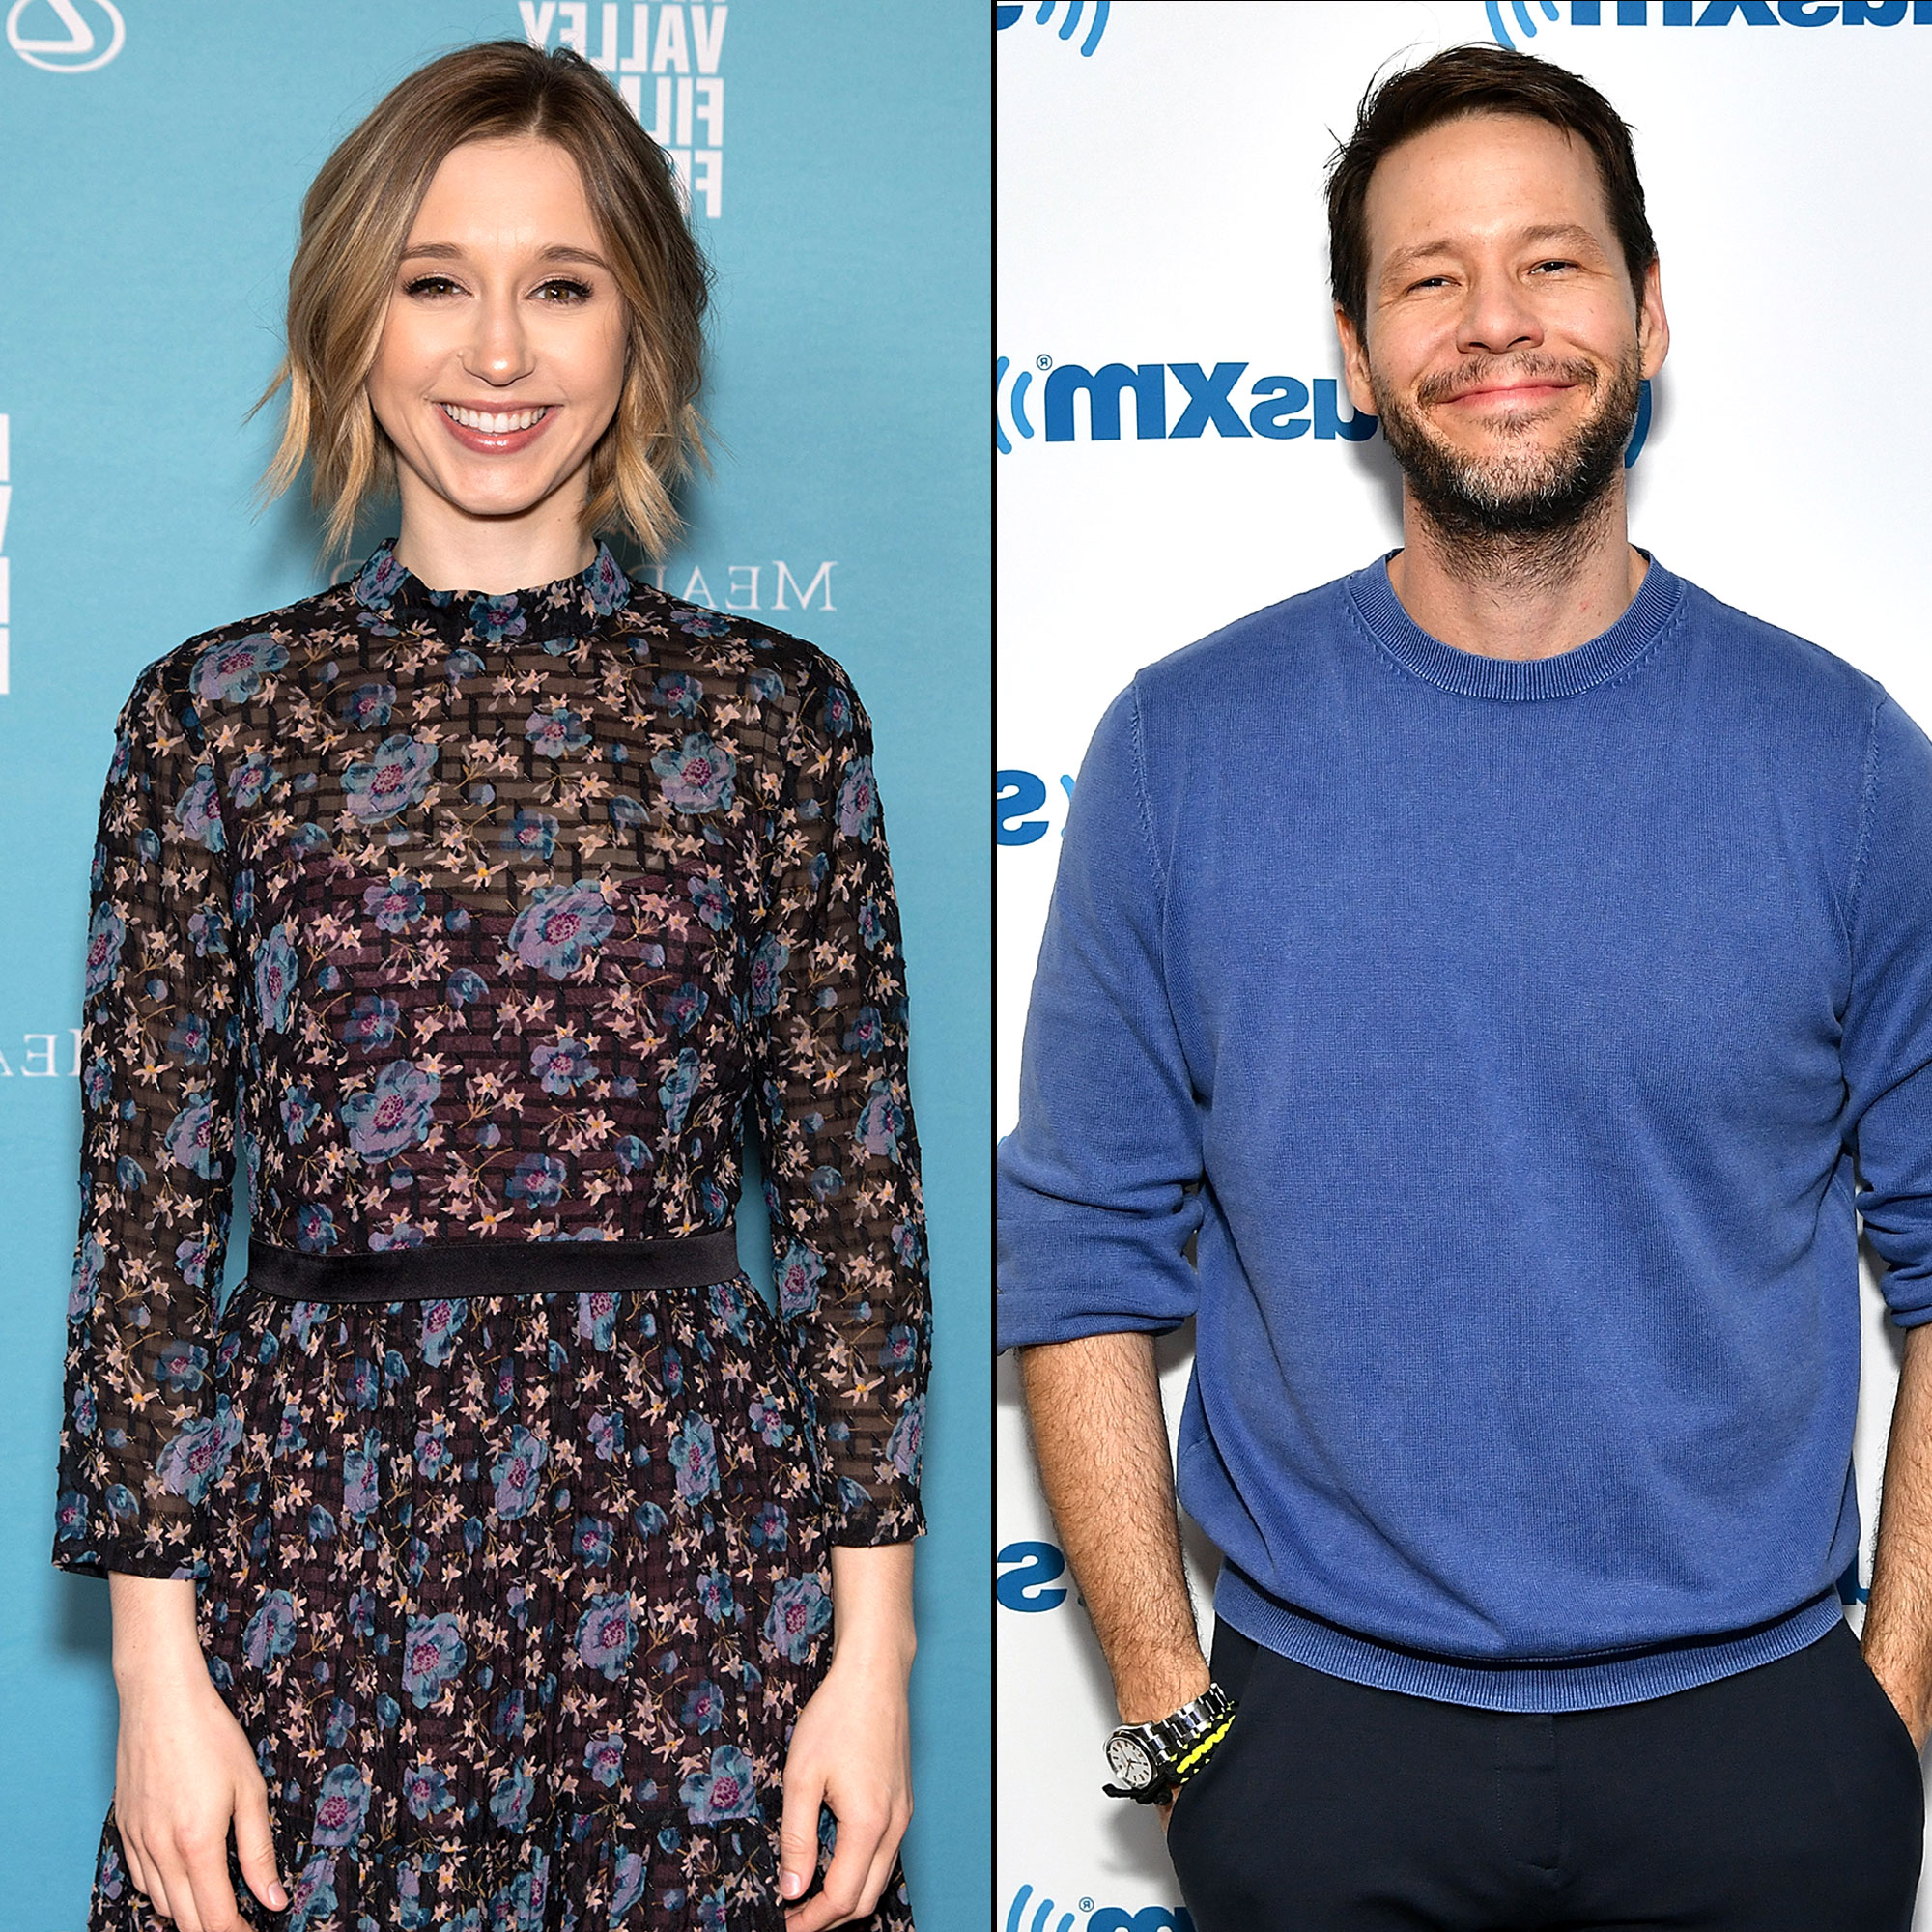 Every Celeb Appearing on the New 'Twilight Zone' Taissa Farmiga Ike Barinholtz - The Mindy Project 's Ike Barinholtz and American Horror Story vet Taissa Farmiga are both set to star in a not-yet-revealed episode. Better Call Saul 's Rhea Seehorn and The Gifted 's Percy Hynes-White will also appear in the same episode. The first two episodes of The Twilight Zone are now streaming on CBS All Access.